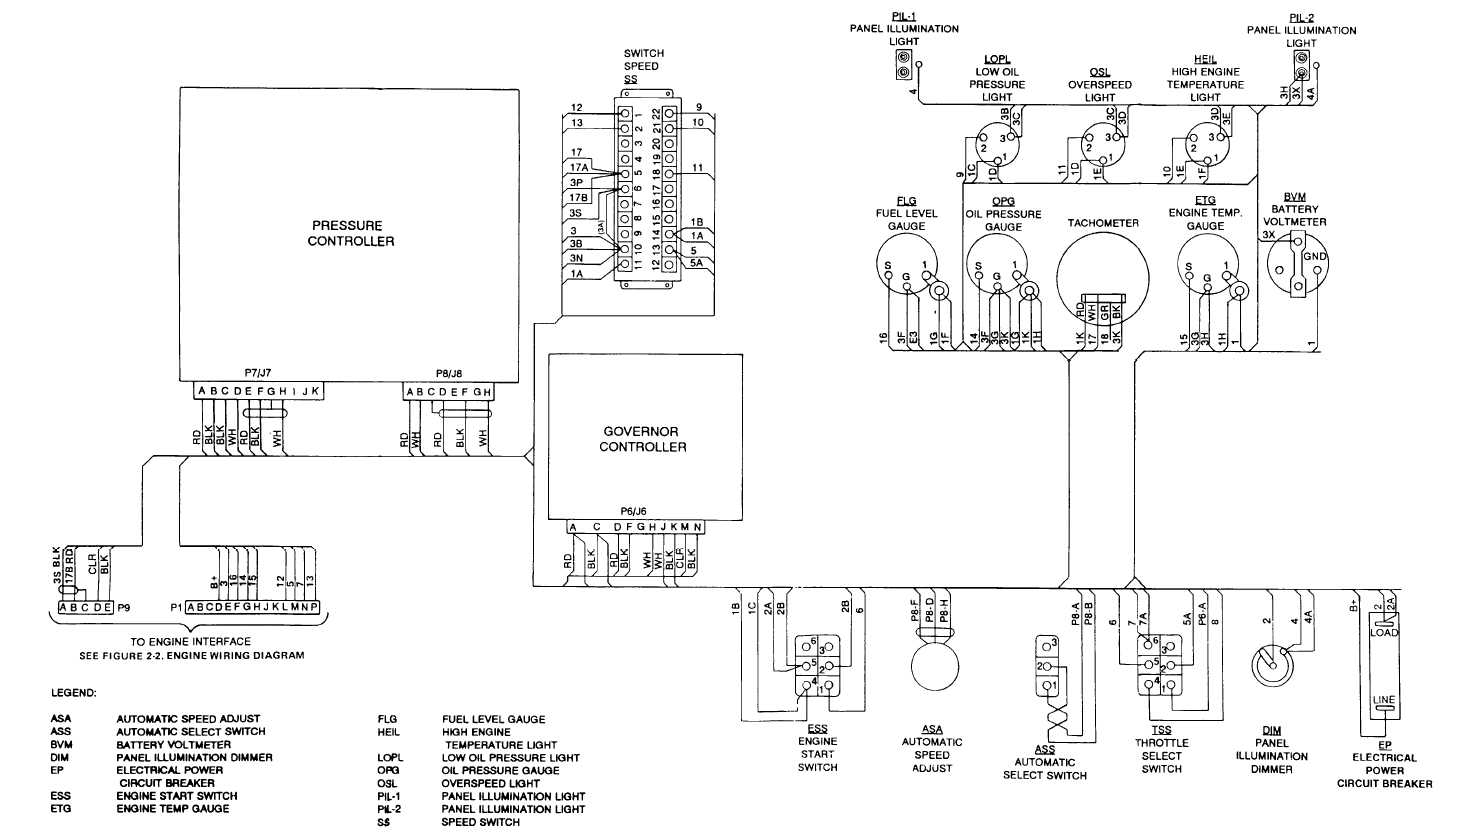 TM 10 4320 315 24_18_1 figure 2 1 control panel wiring diagram (sheet 1 of 4) vcb panel wiring diagram at couponss.co